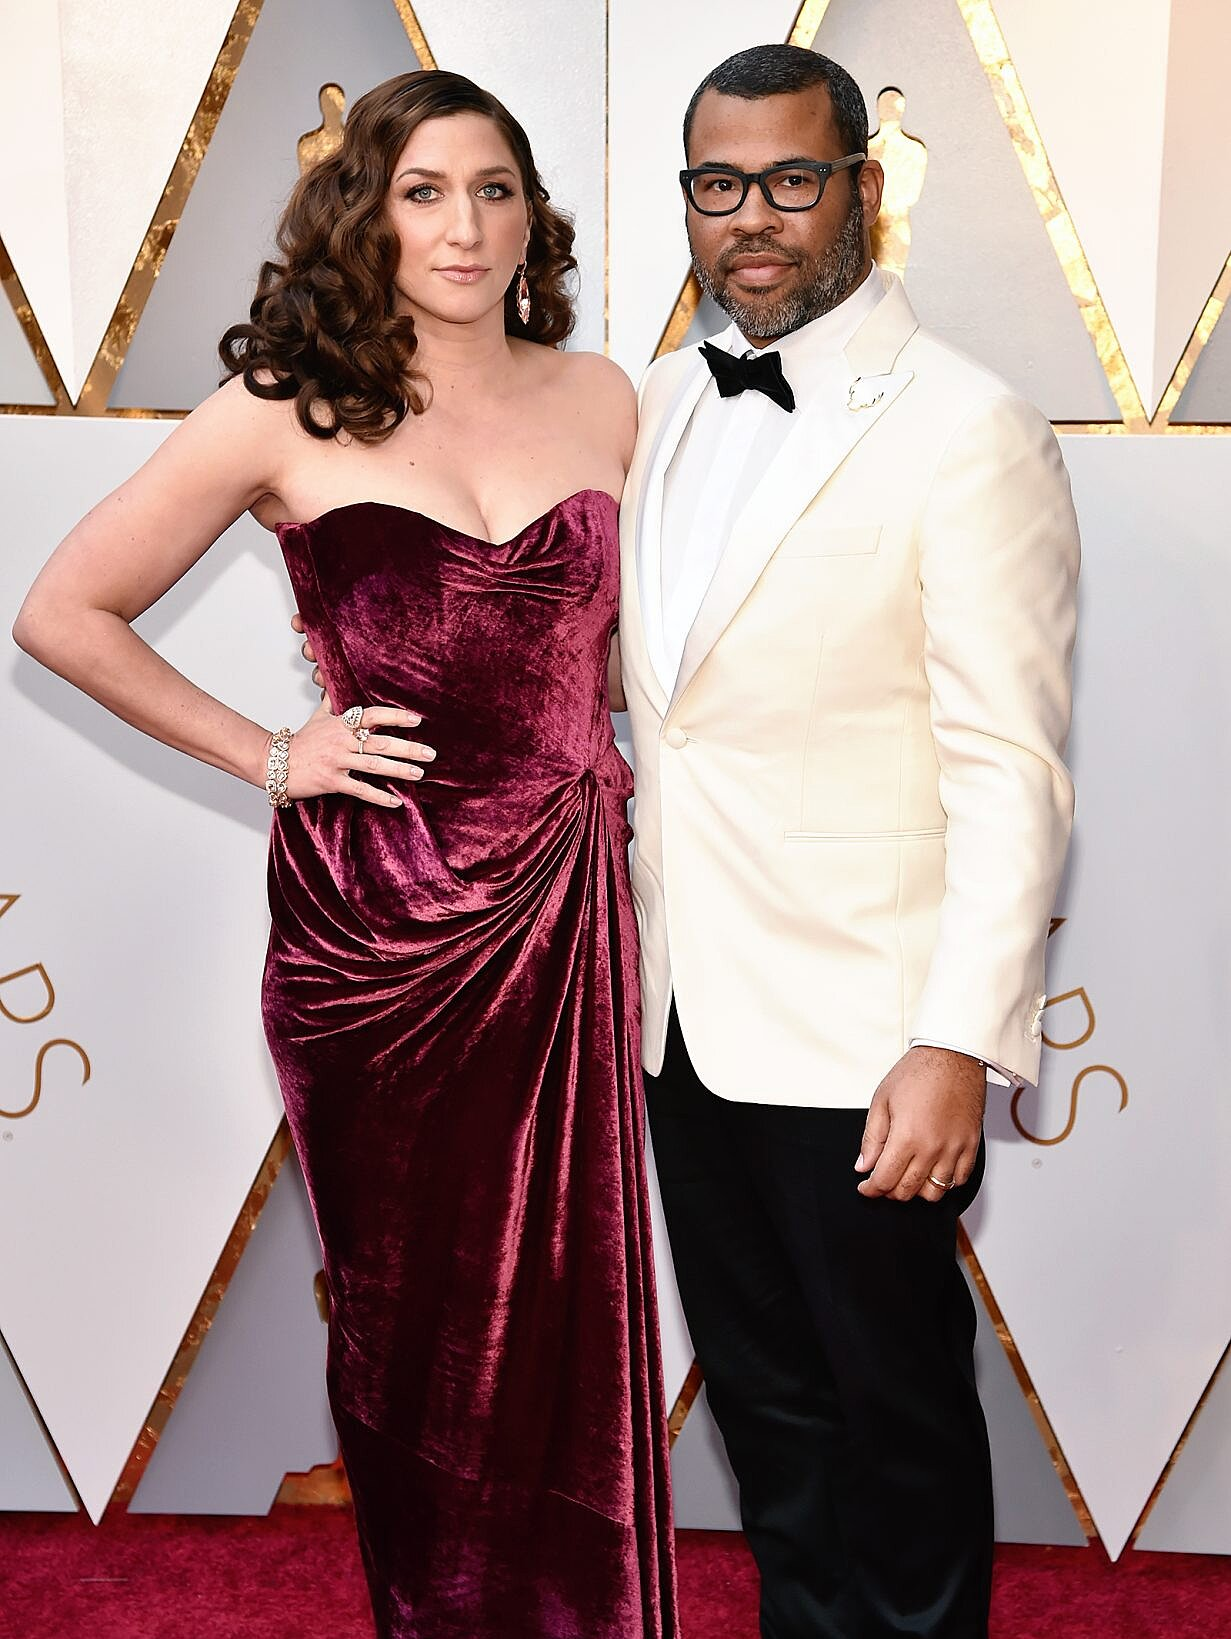 Chelsea Peretti Shares Glimpse Of Son With Jordan Peele People Com